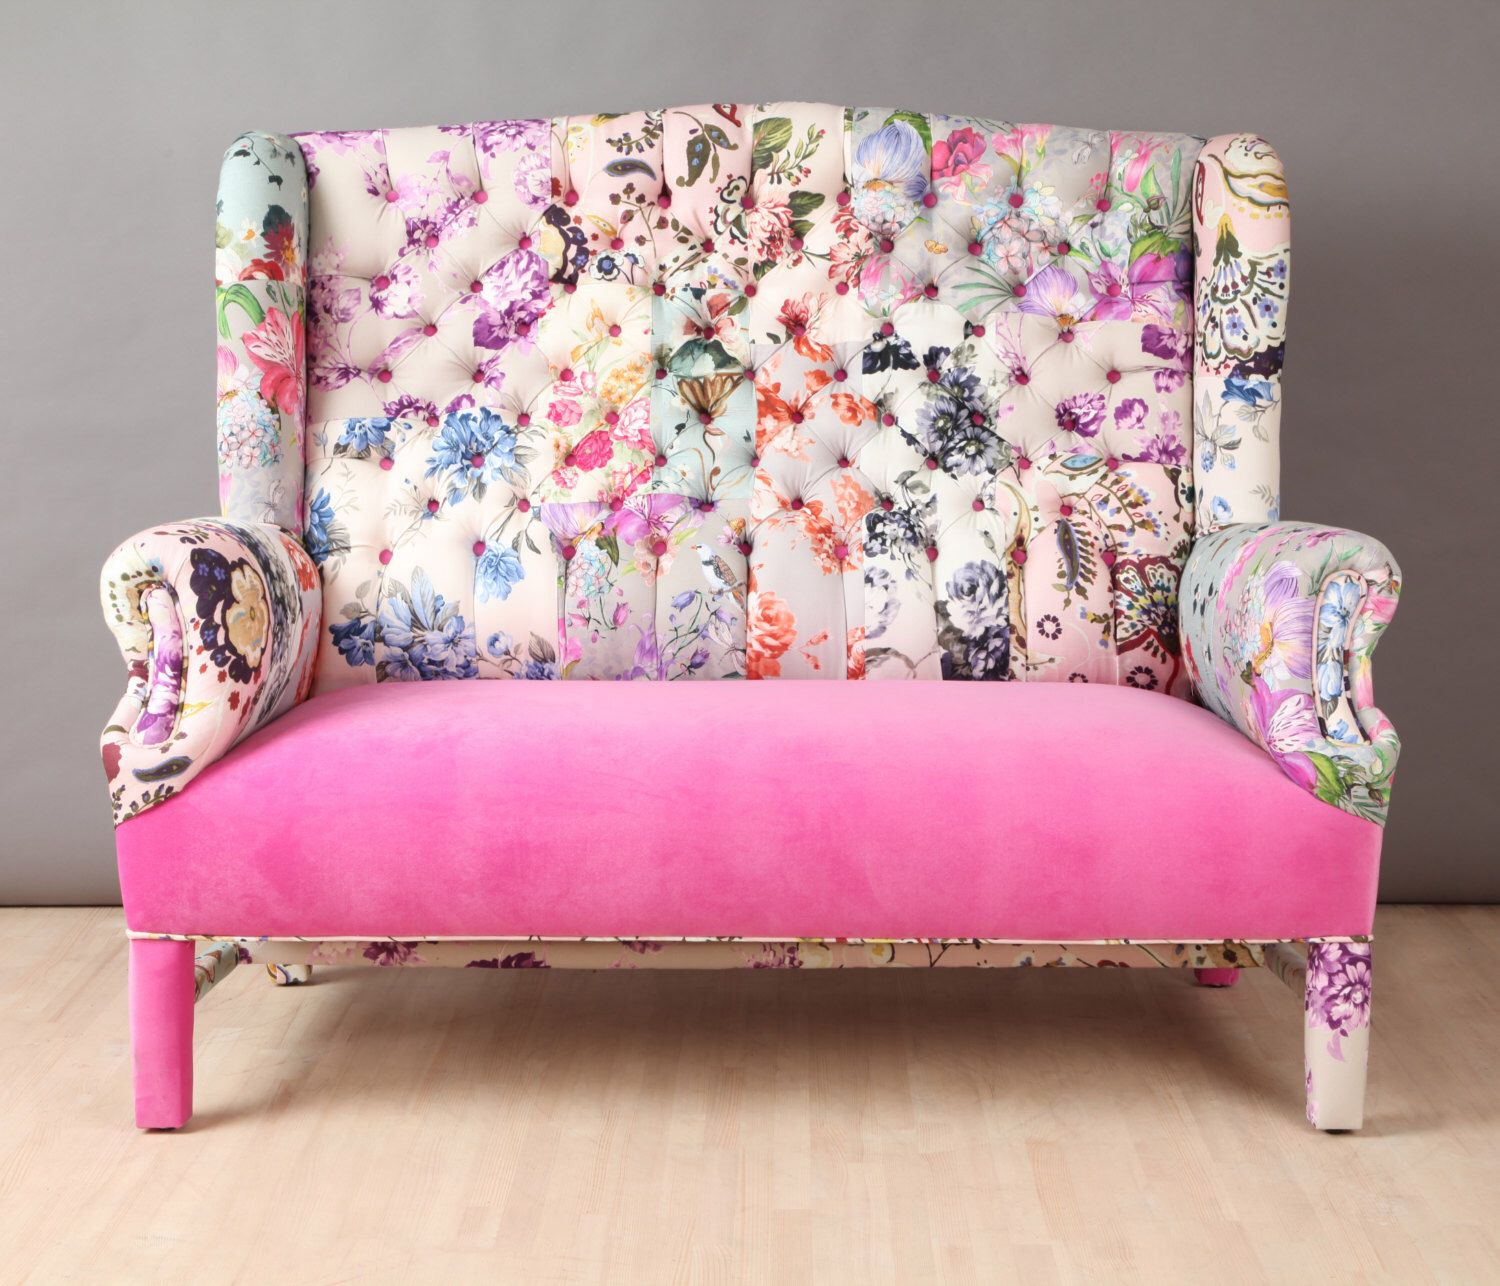 pink sofa browse uk lowes covers pin by lee newell on lounge chairs patchwork furniture candy wing namedesignstudio etsy https www